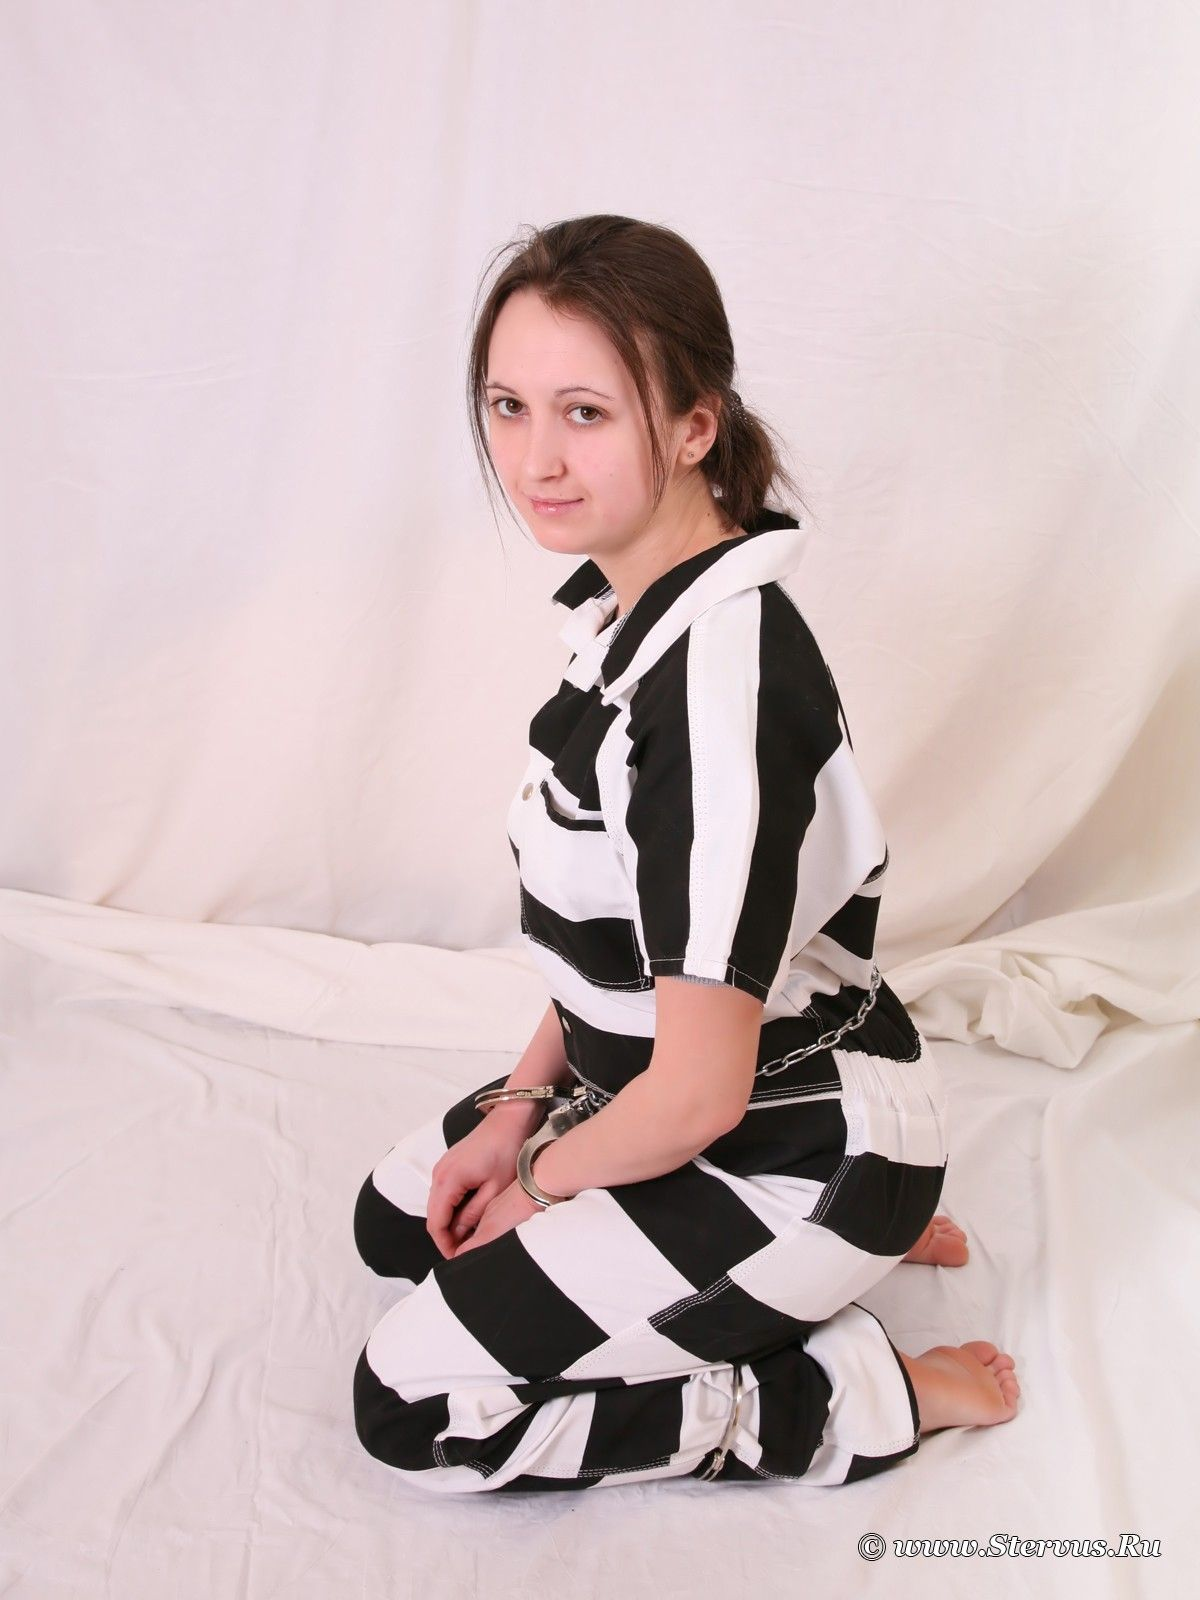 Woman Enjoys Prisoner' Game In Handcuffs And Leg